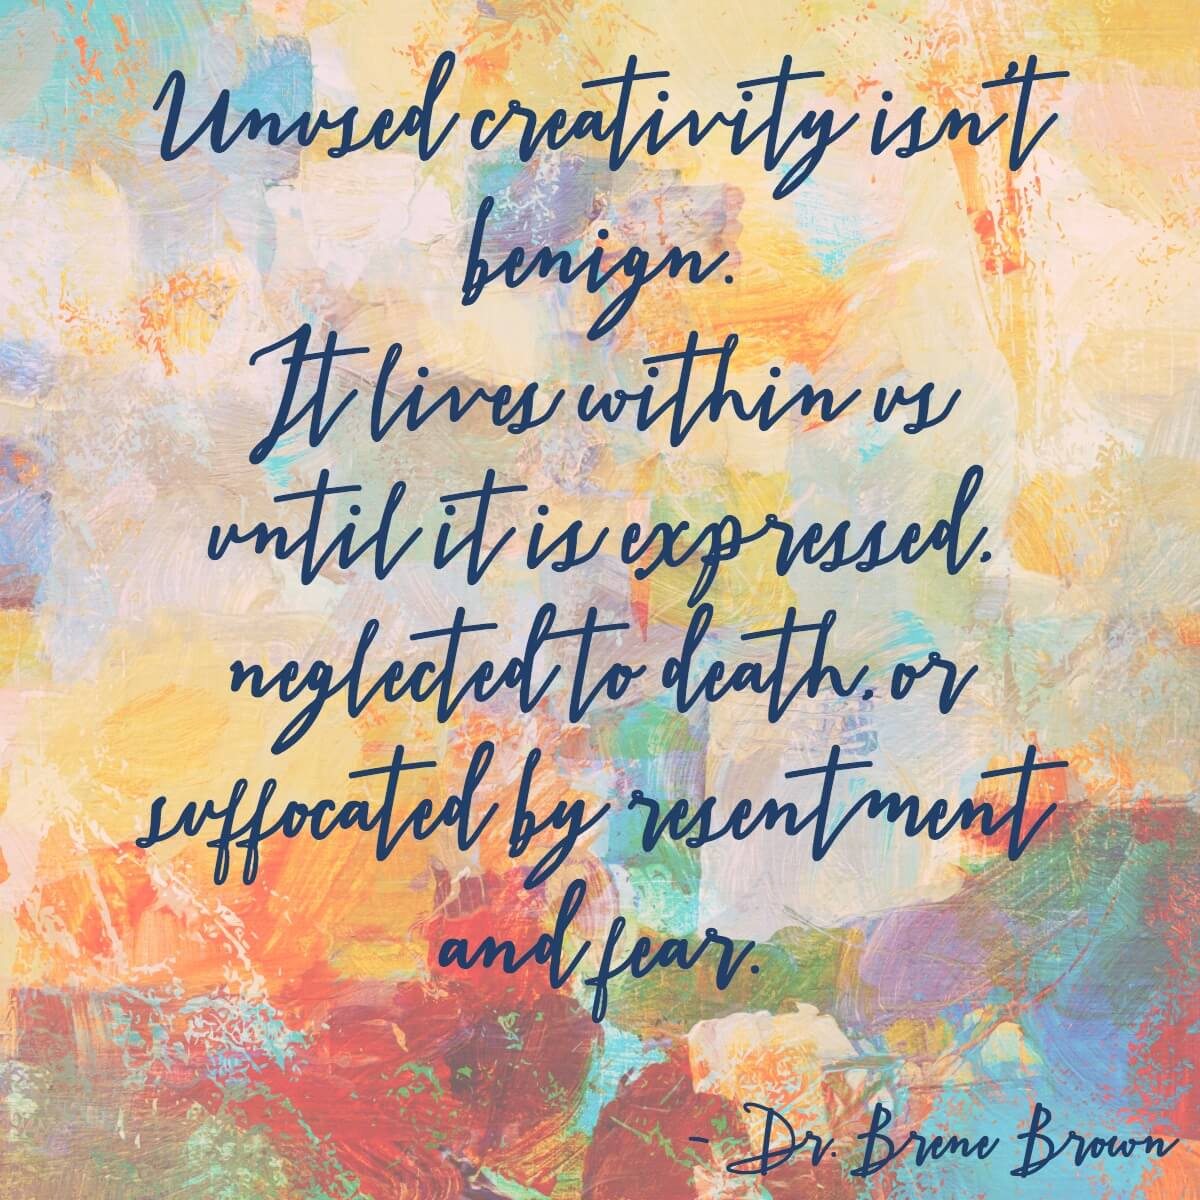 Think you can't transform your life with your own creativity? You can learn how to find your creativity - it's not something you either have or don't. You can learn how to find creativity. www.themidlifemamas.com